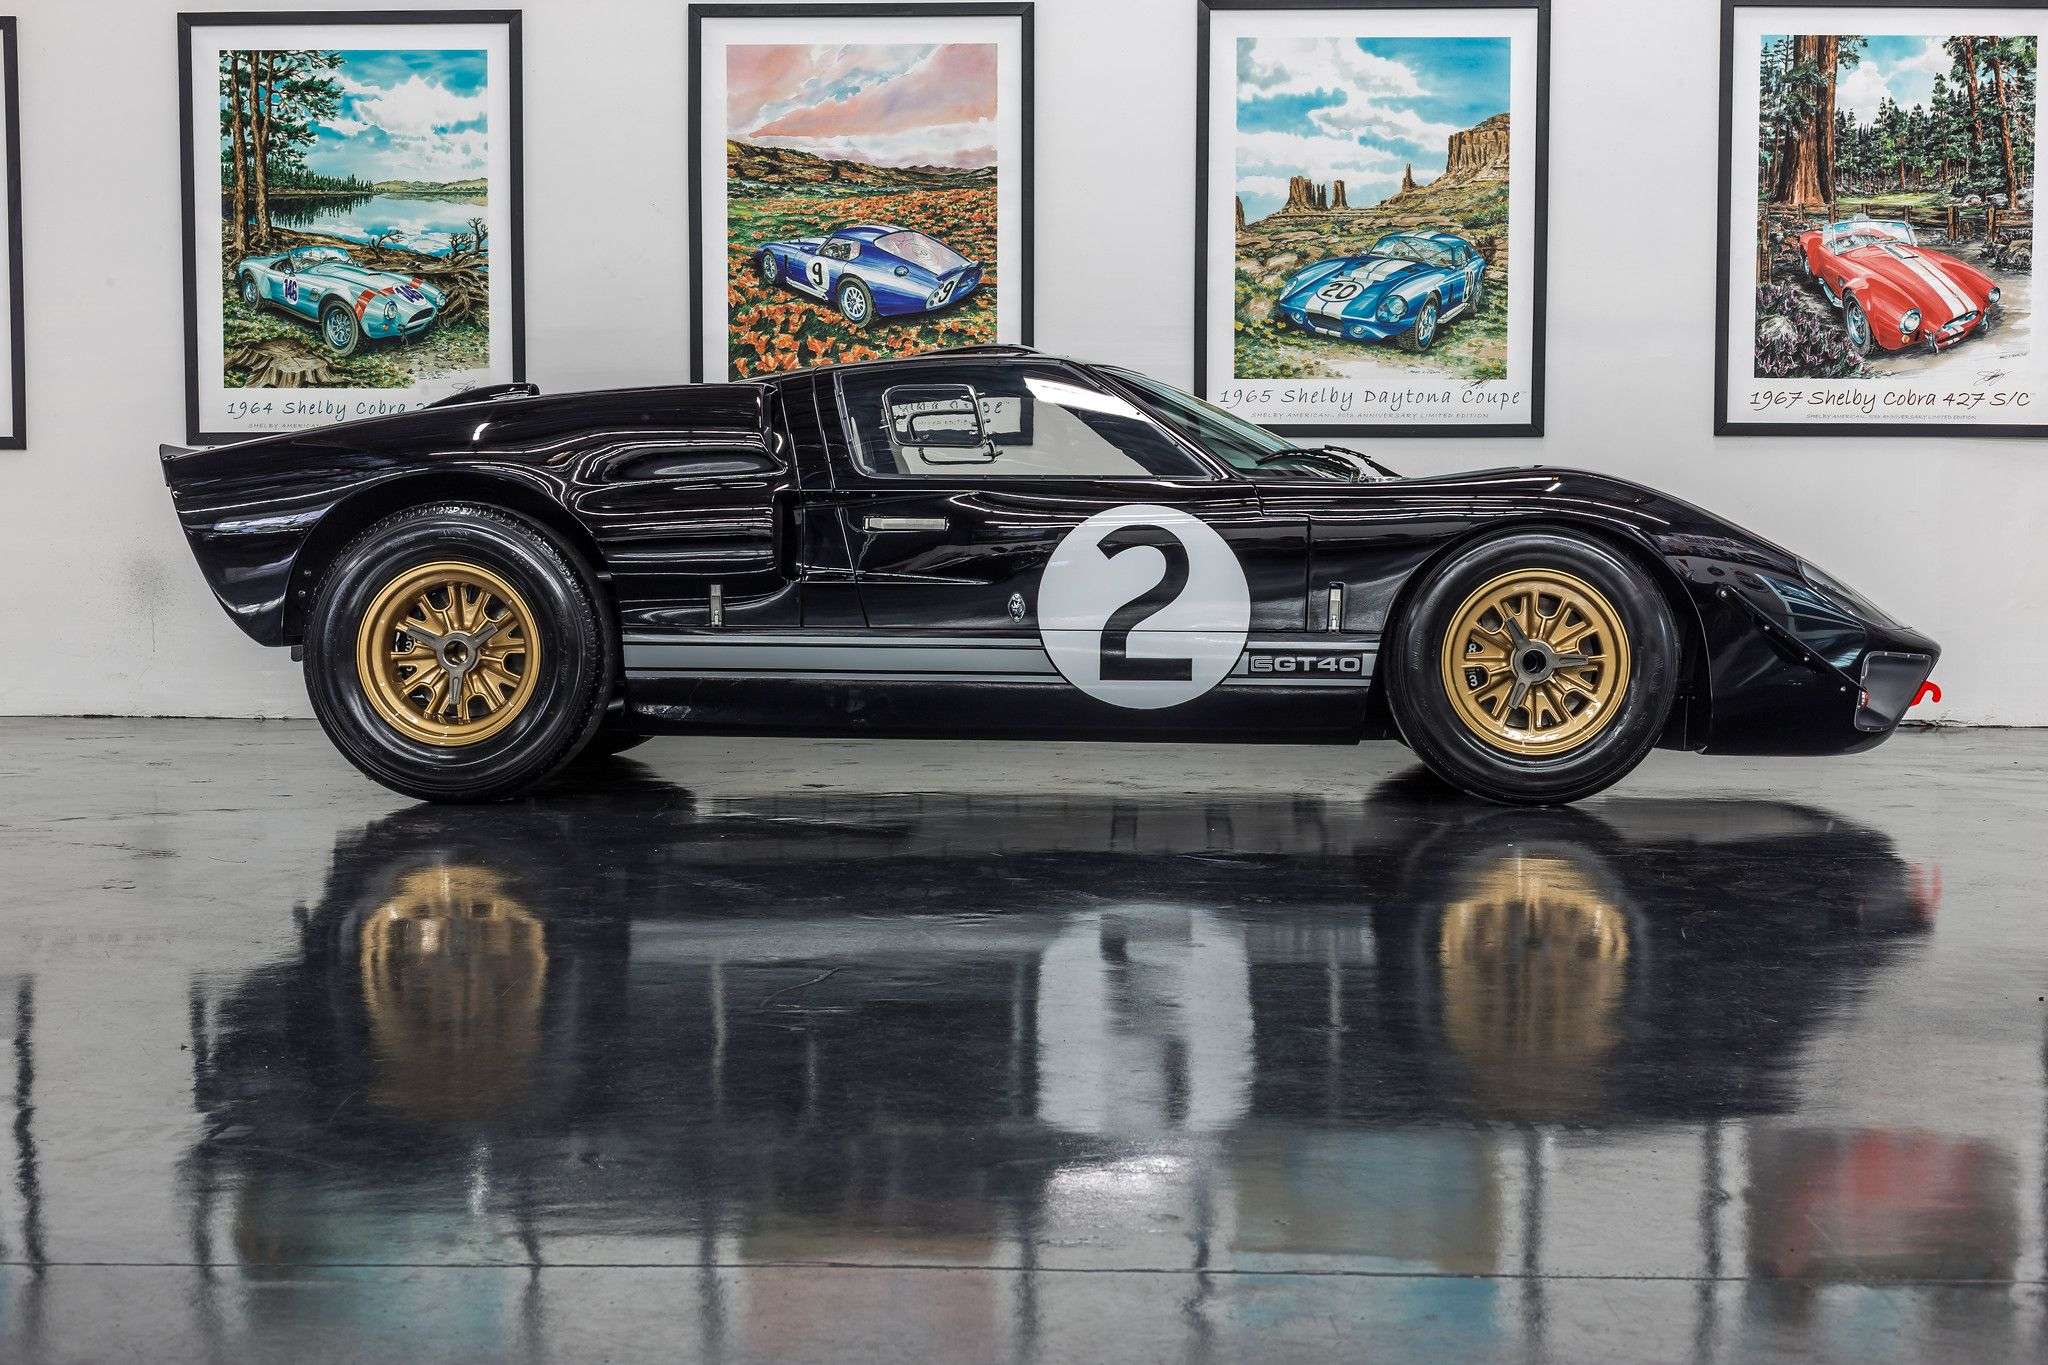 Shelby CSGT40